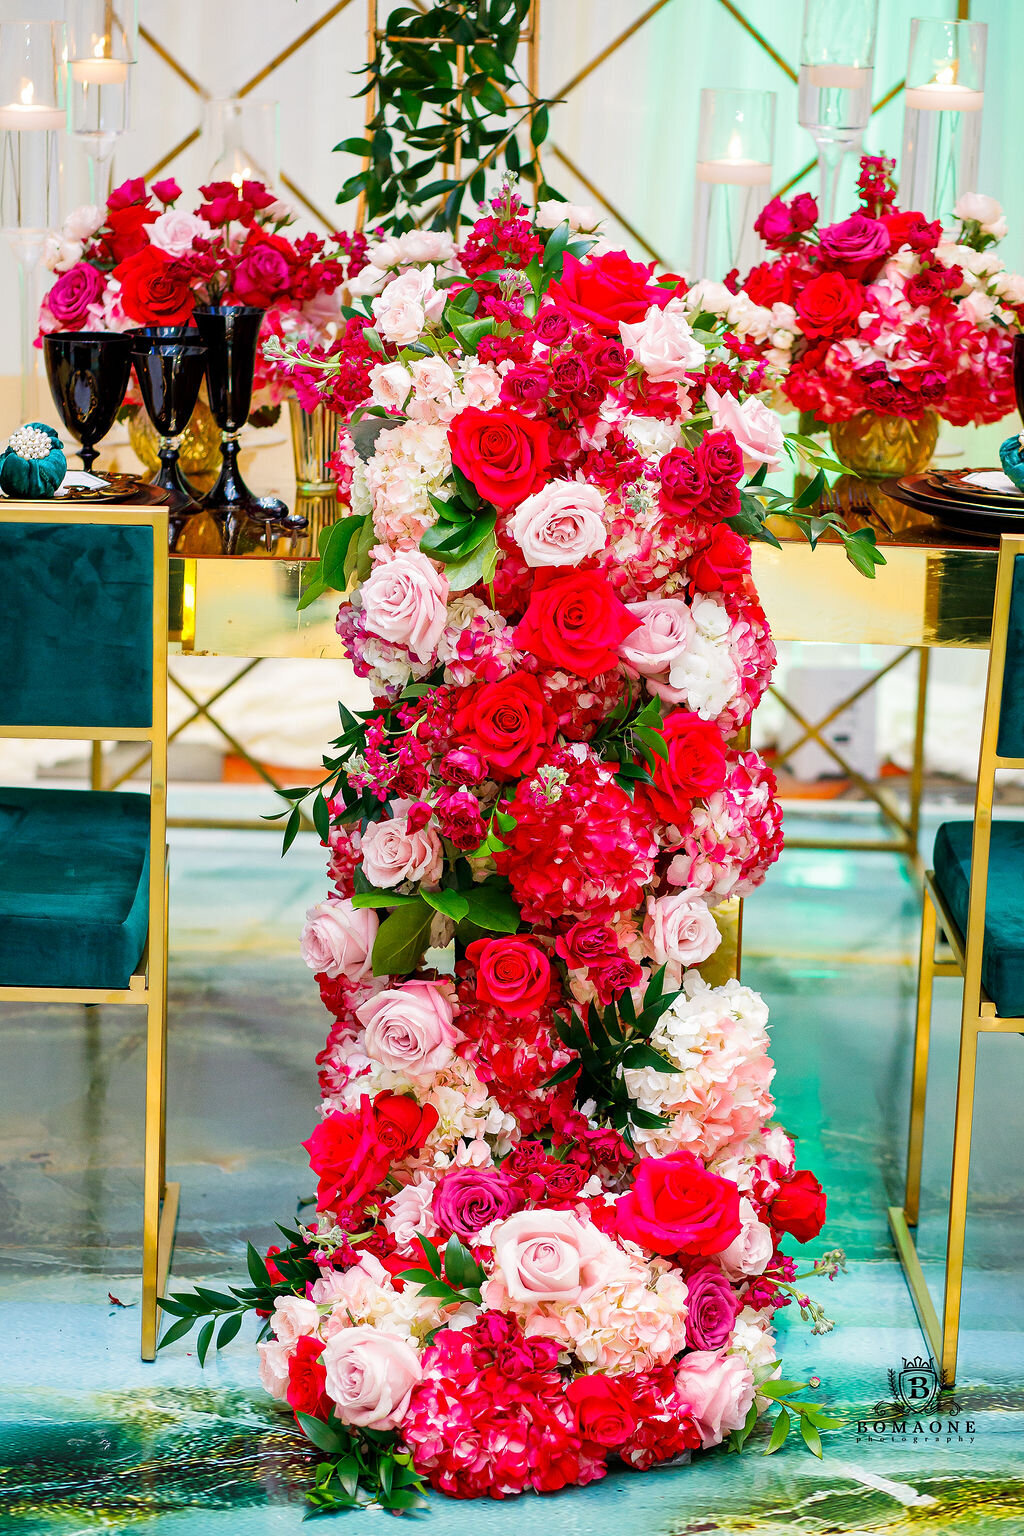 Touch of Jewel Events, Dallas Wedding Planner, Texas Wedding Planner, Luxury Wedding Planner Dallas, Emerald green and Black wedding, Westin Dallas Downto (16)